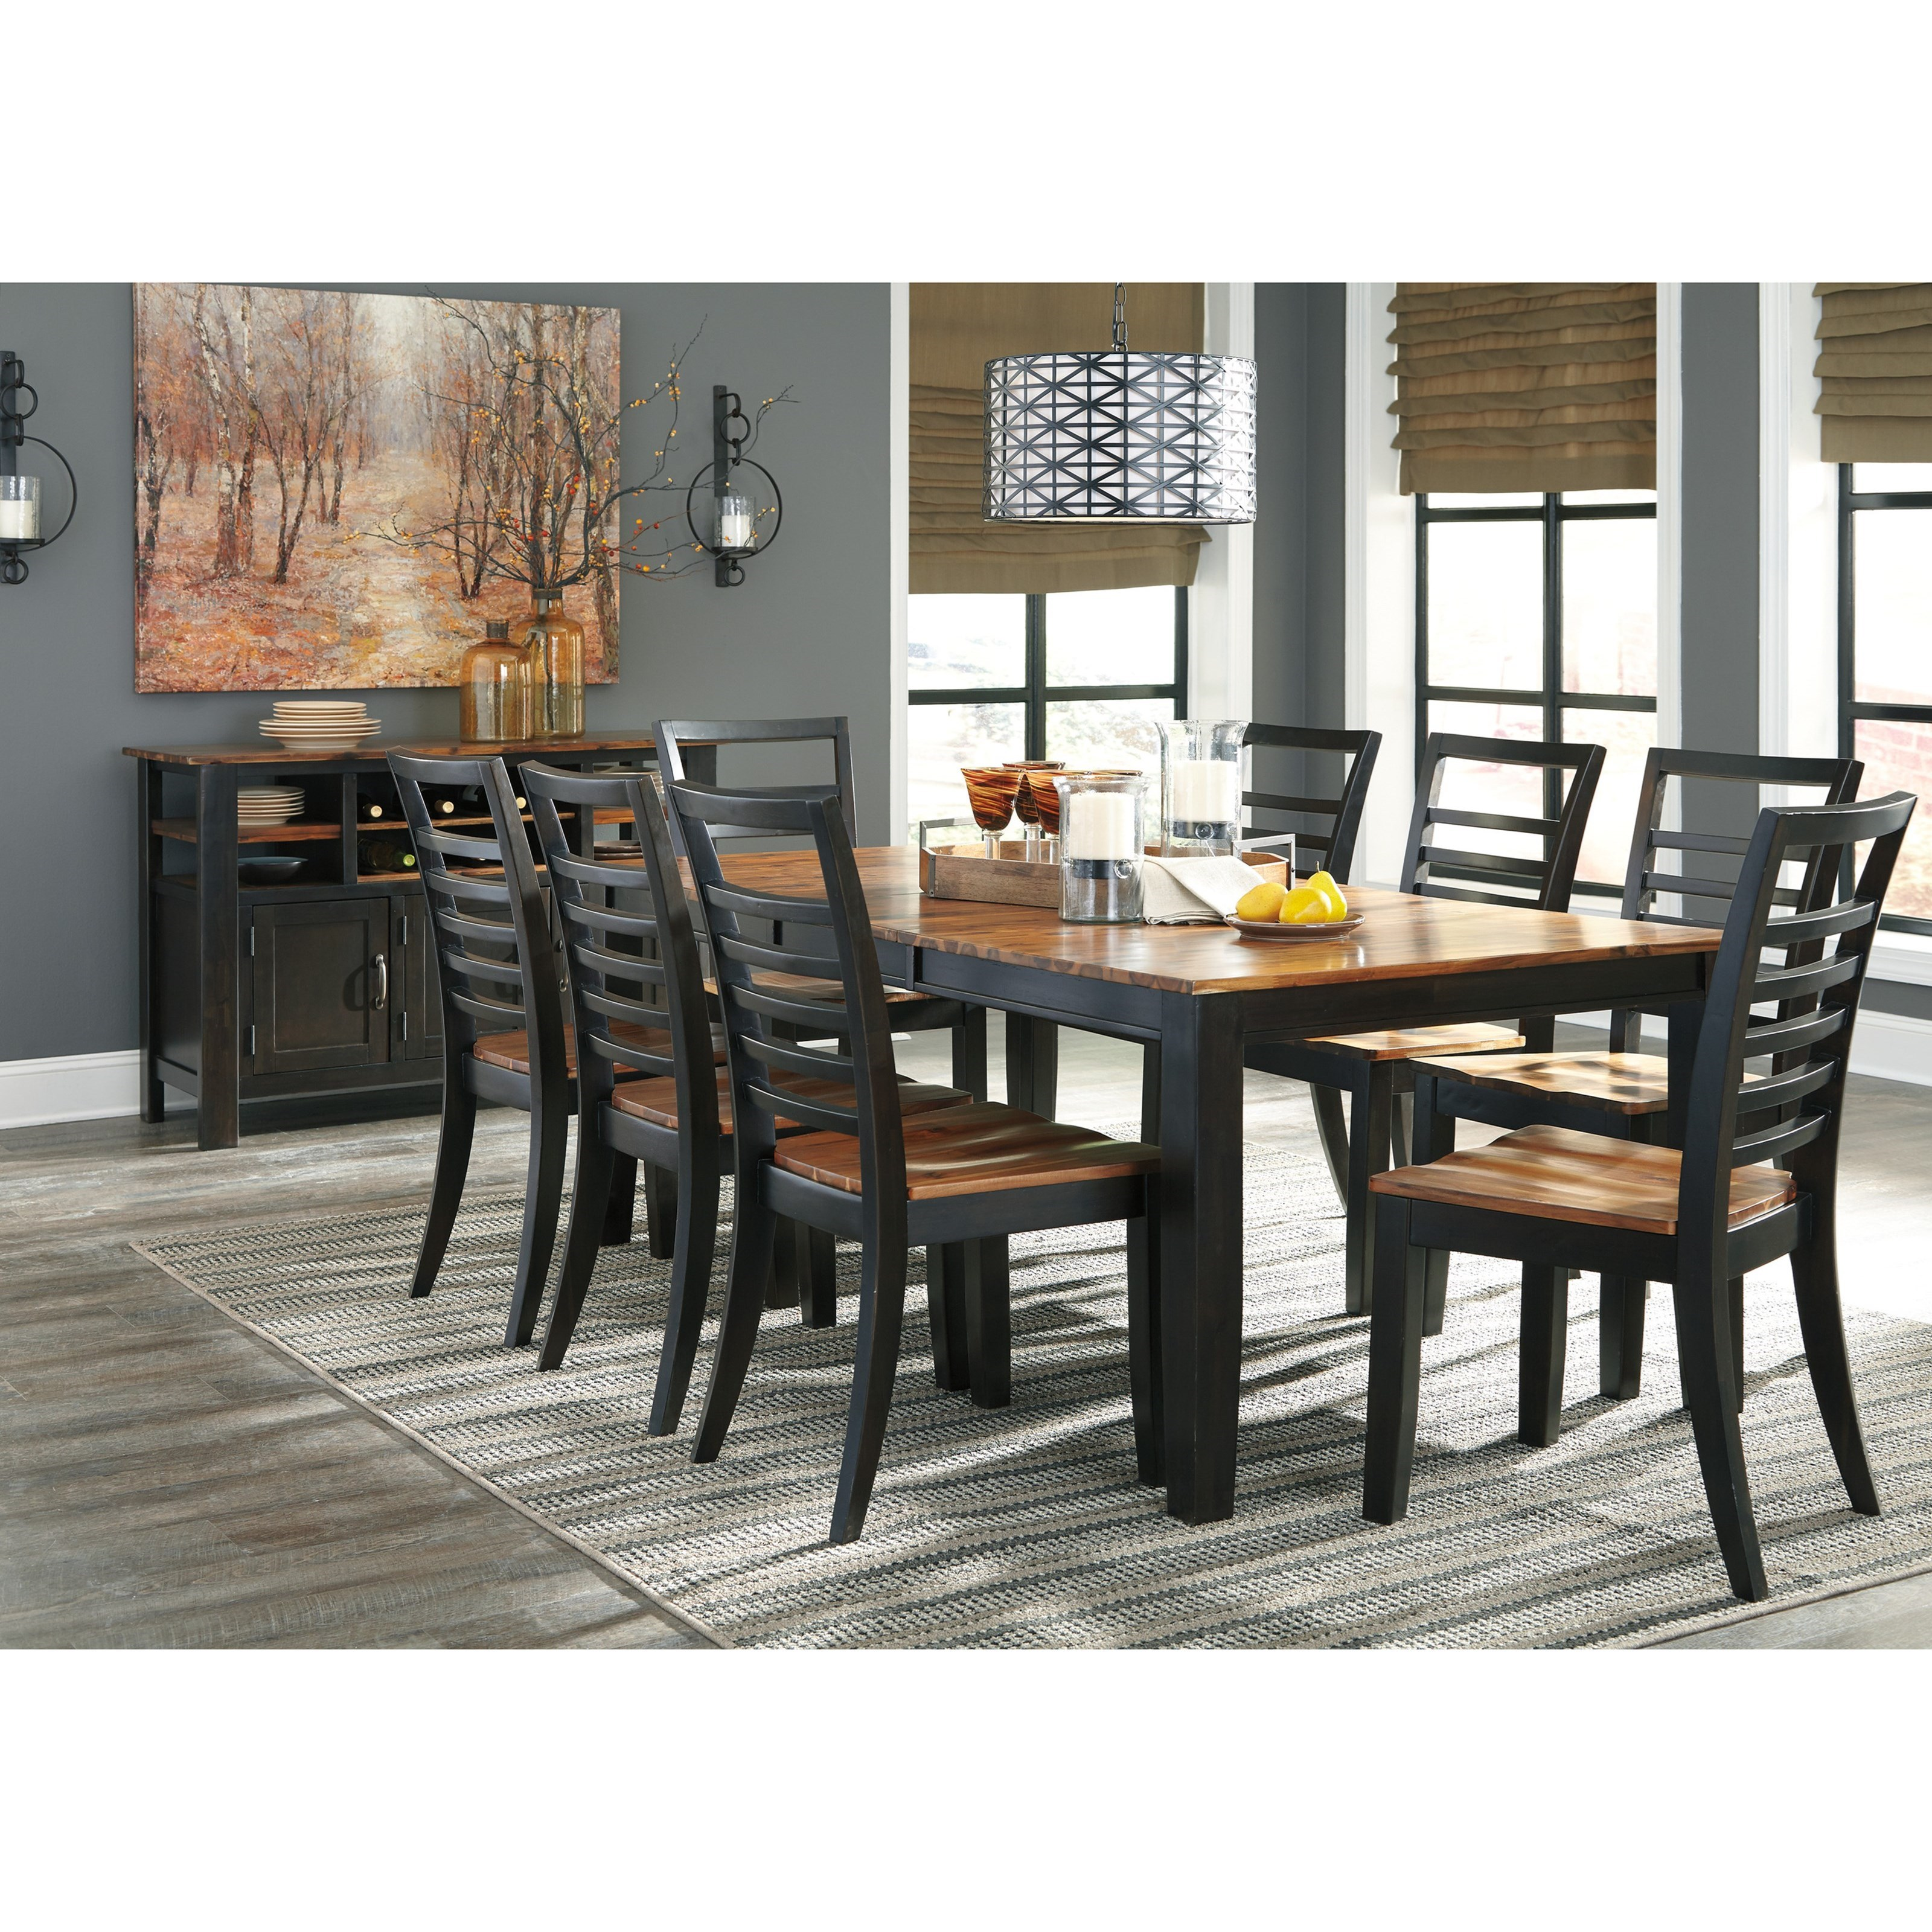 Ashley formal dining room furniture